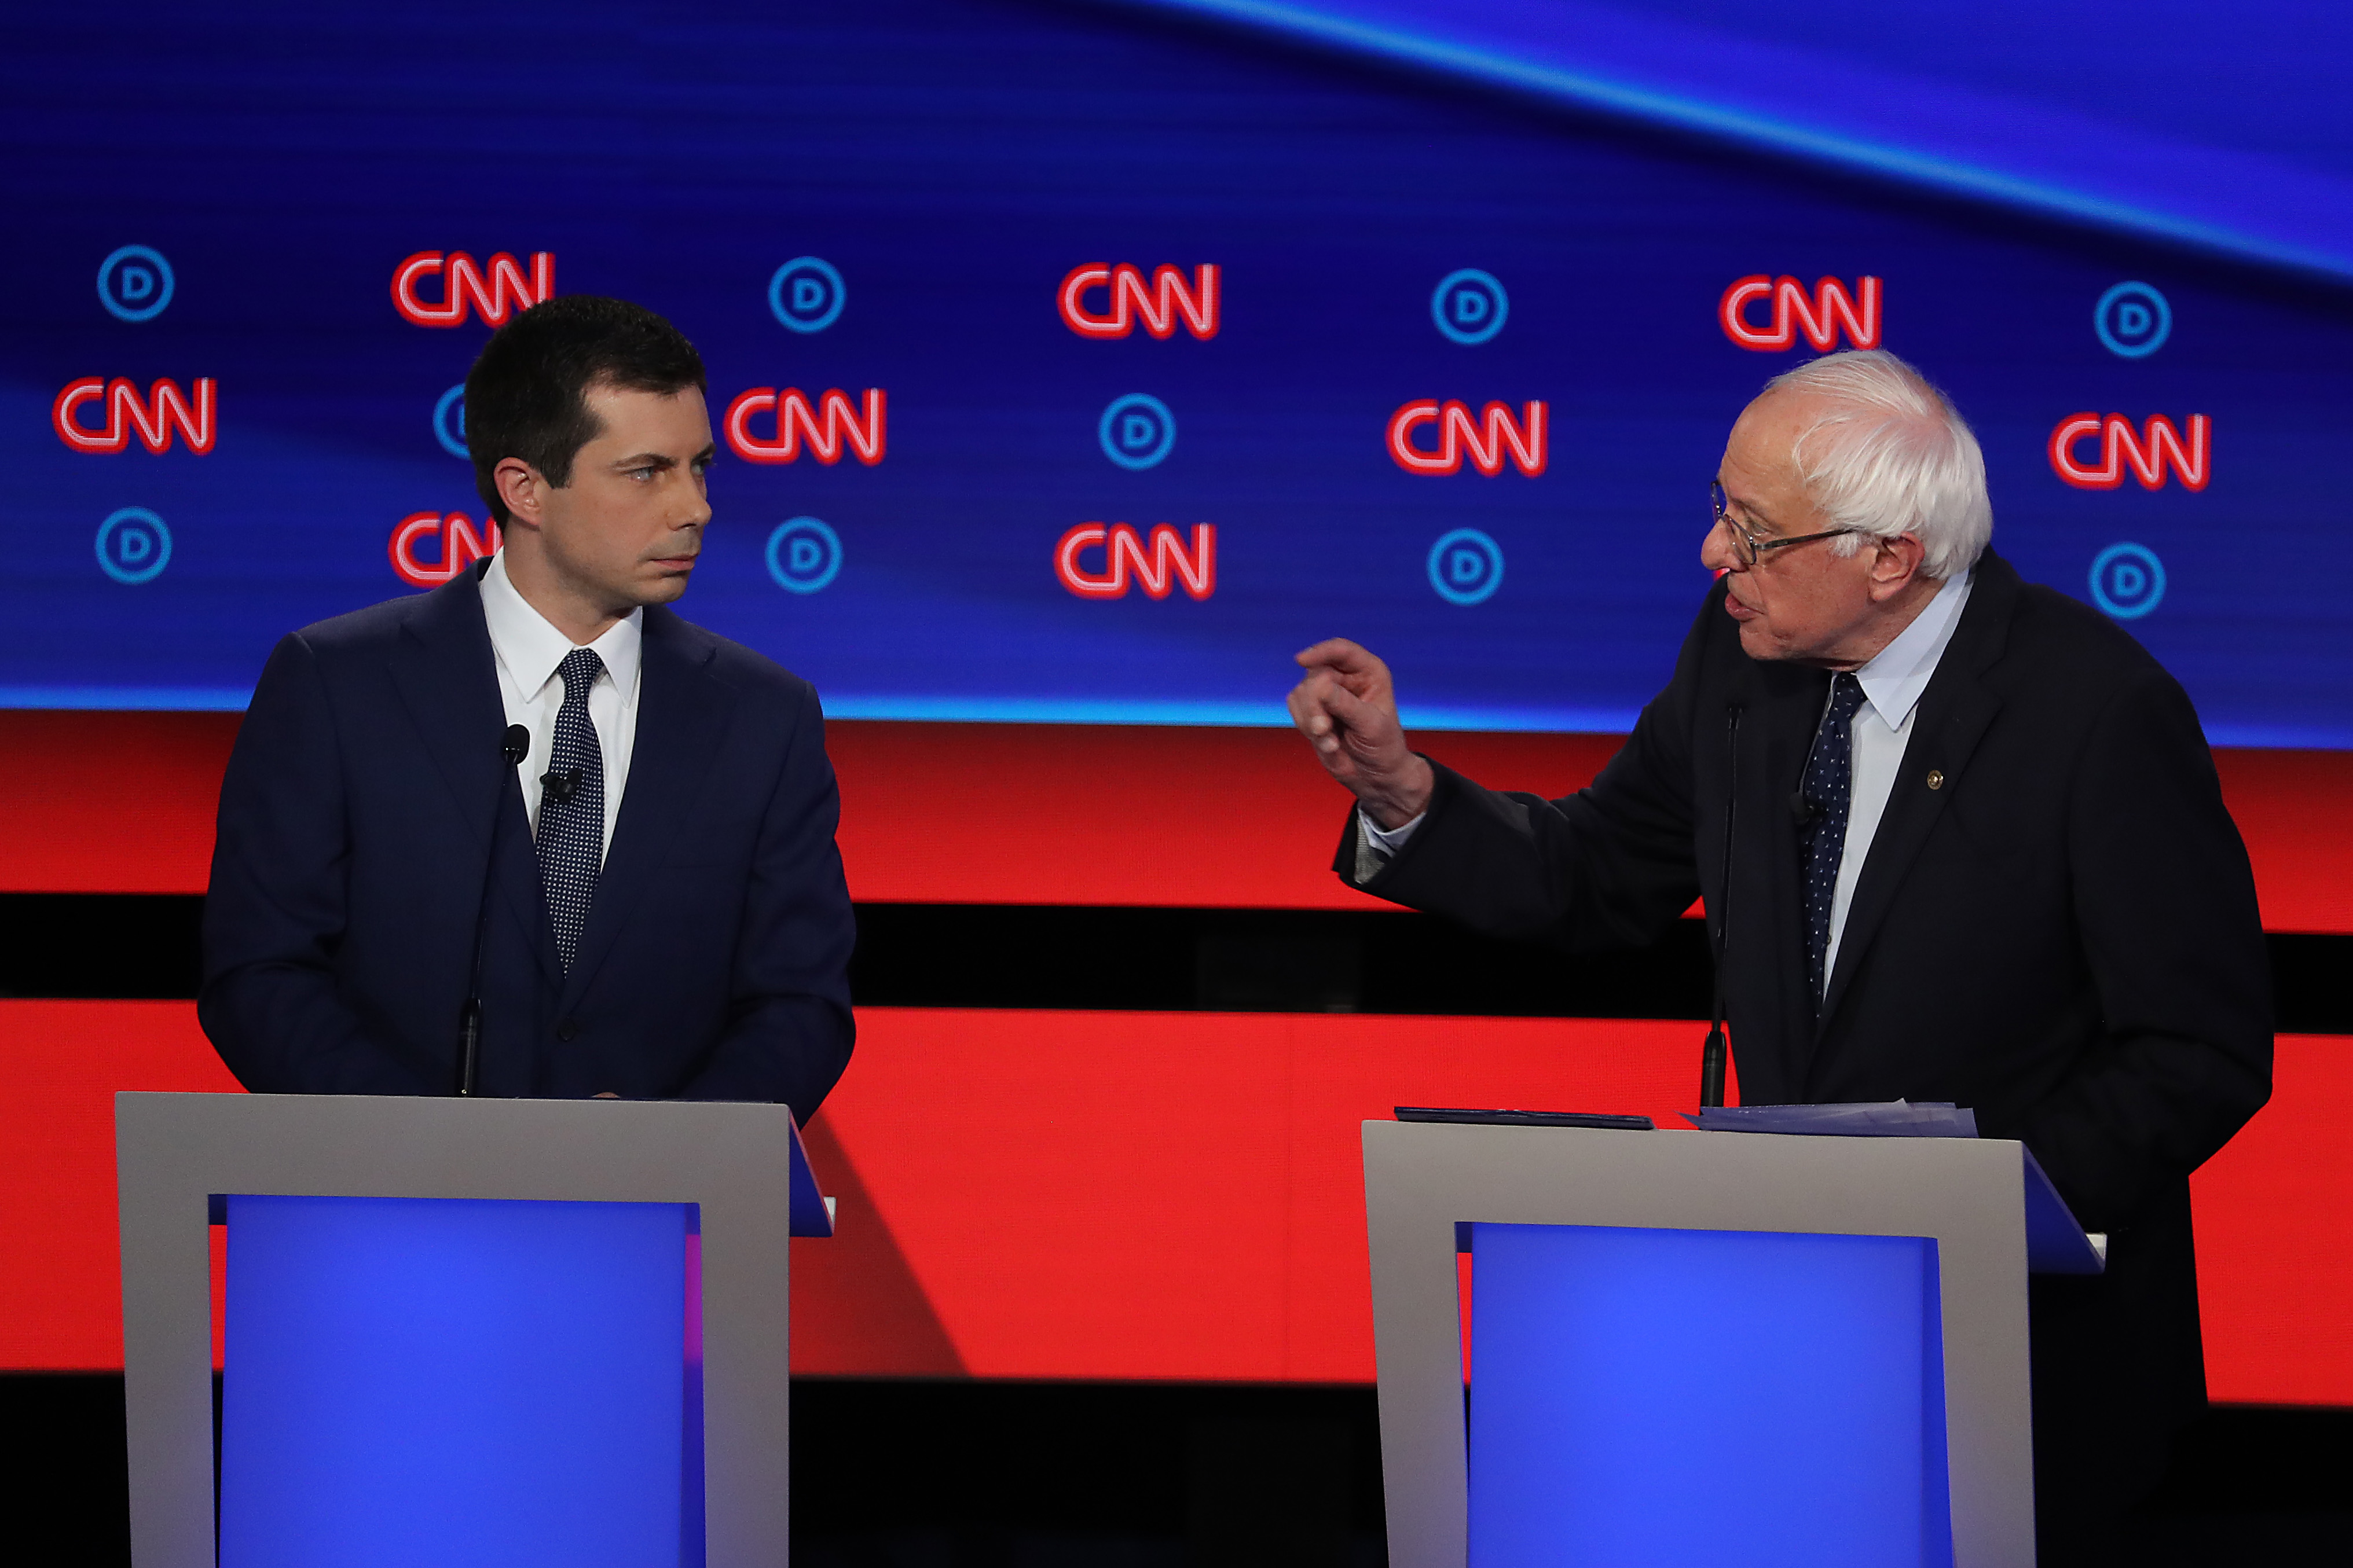 Democratic presidential candidate Sen. Bernie Sanders (I-VT) (R) speaks while South Bend, Indiana Mayor Pete Buttigieg listens during the Democratic Presidential Debate at the Fox Theatre July 30, 2019 in Detroit, Michigan.